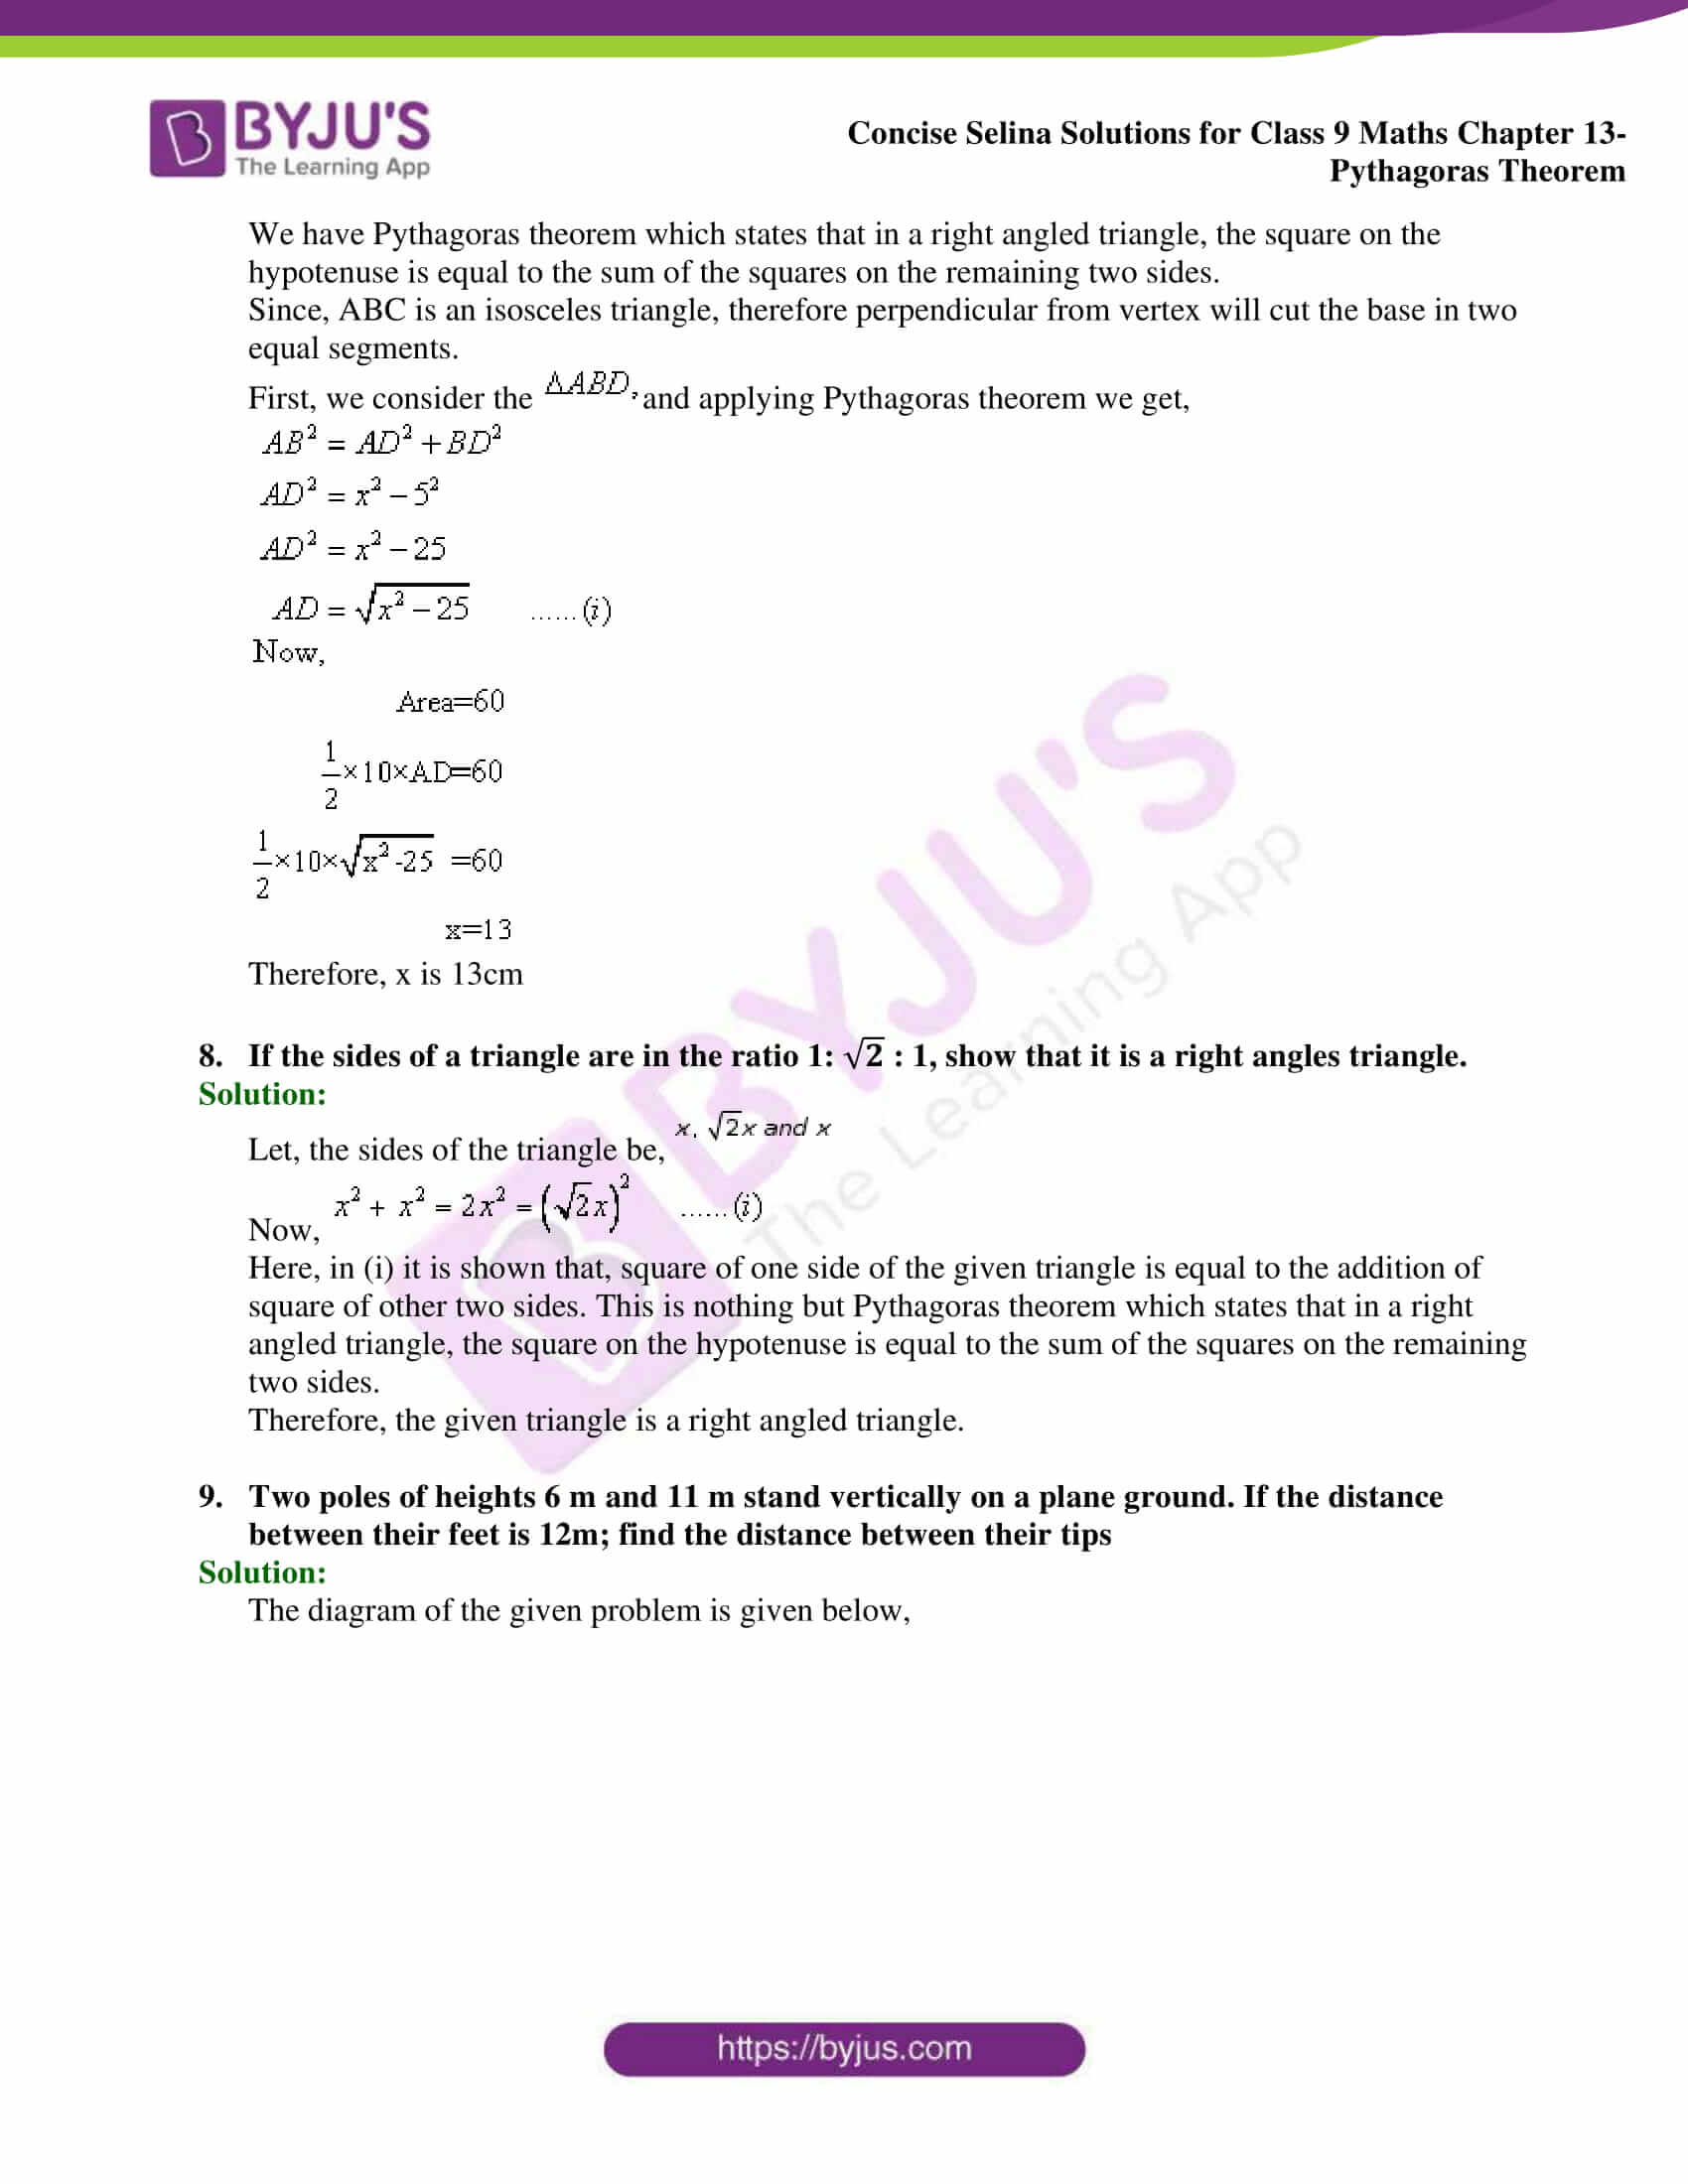 selina Solutions for Class 9 Maths Chapter 13 part 05